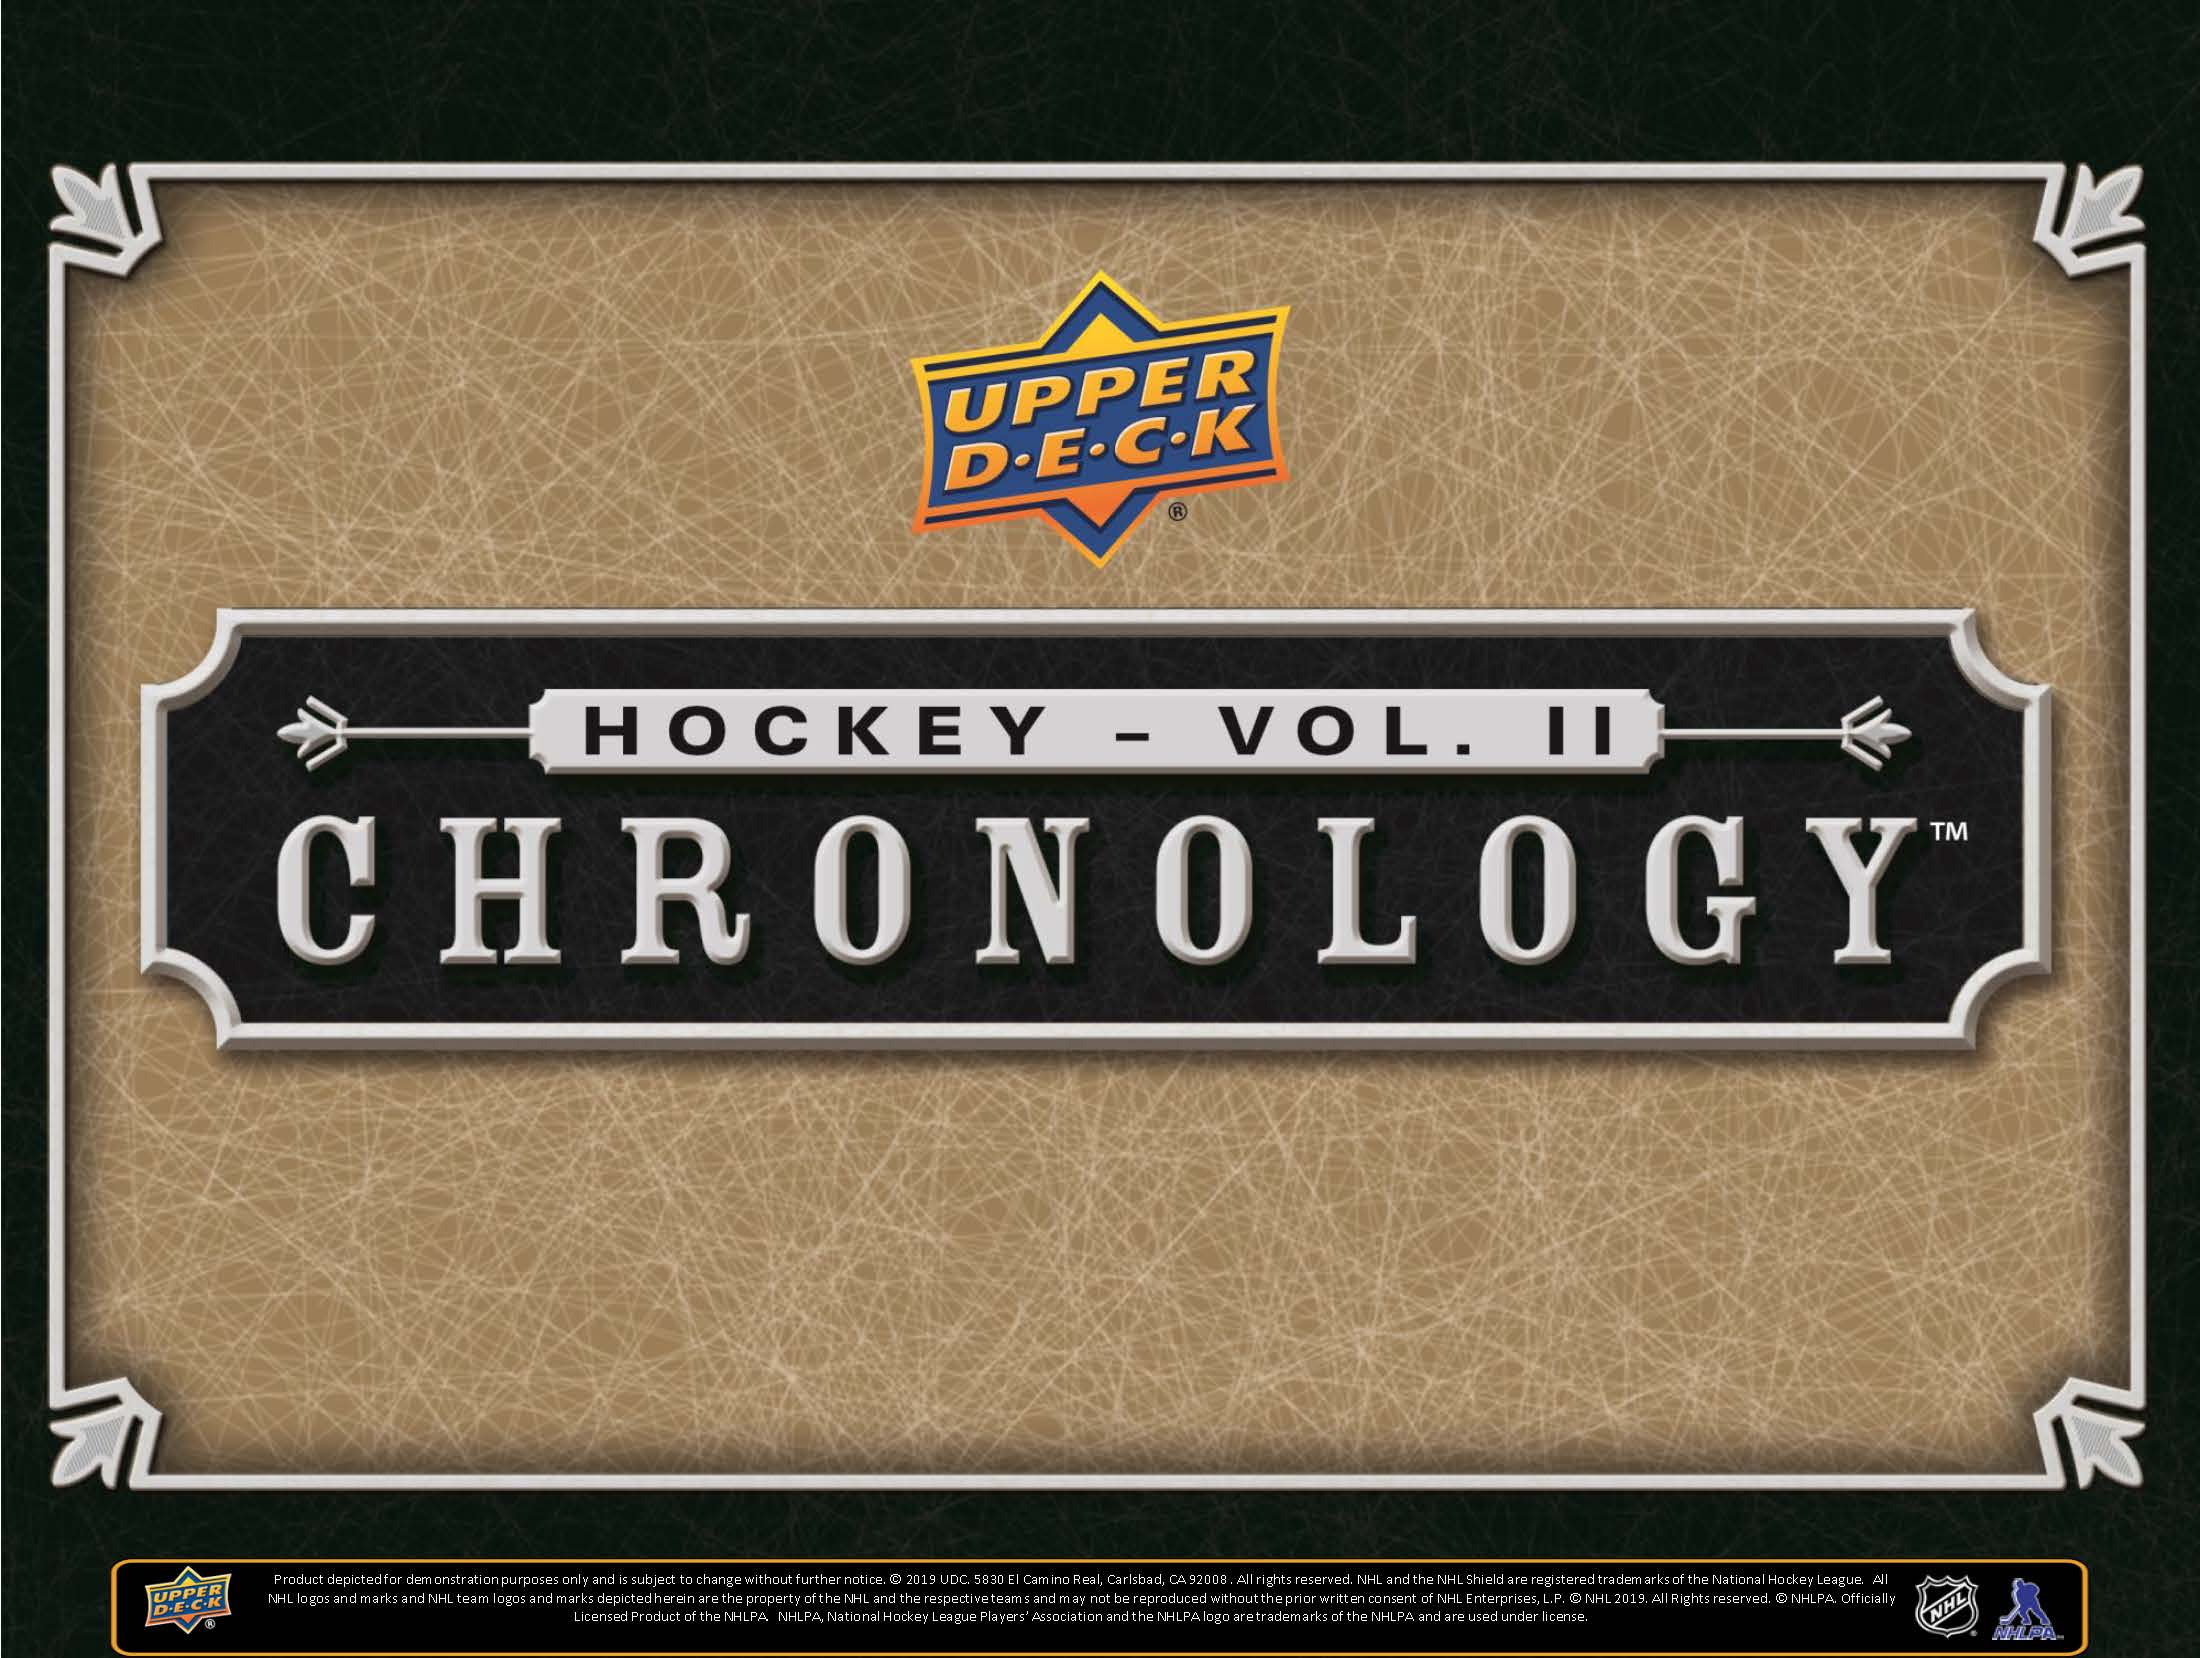 2019-20 Upper Deck Chronology Hockey Vol 2 Checklist